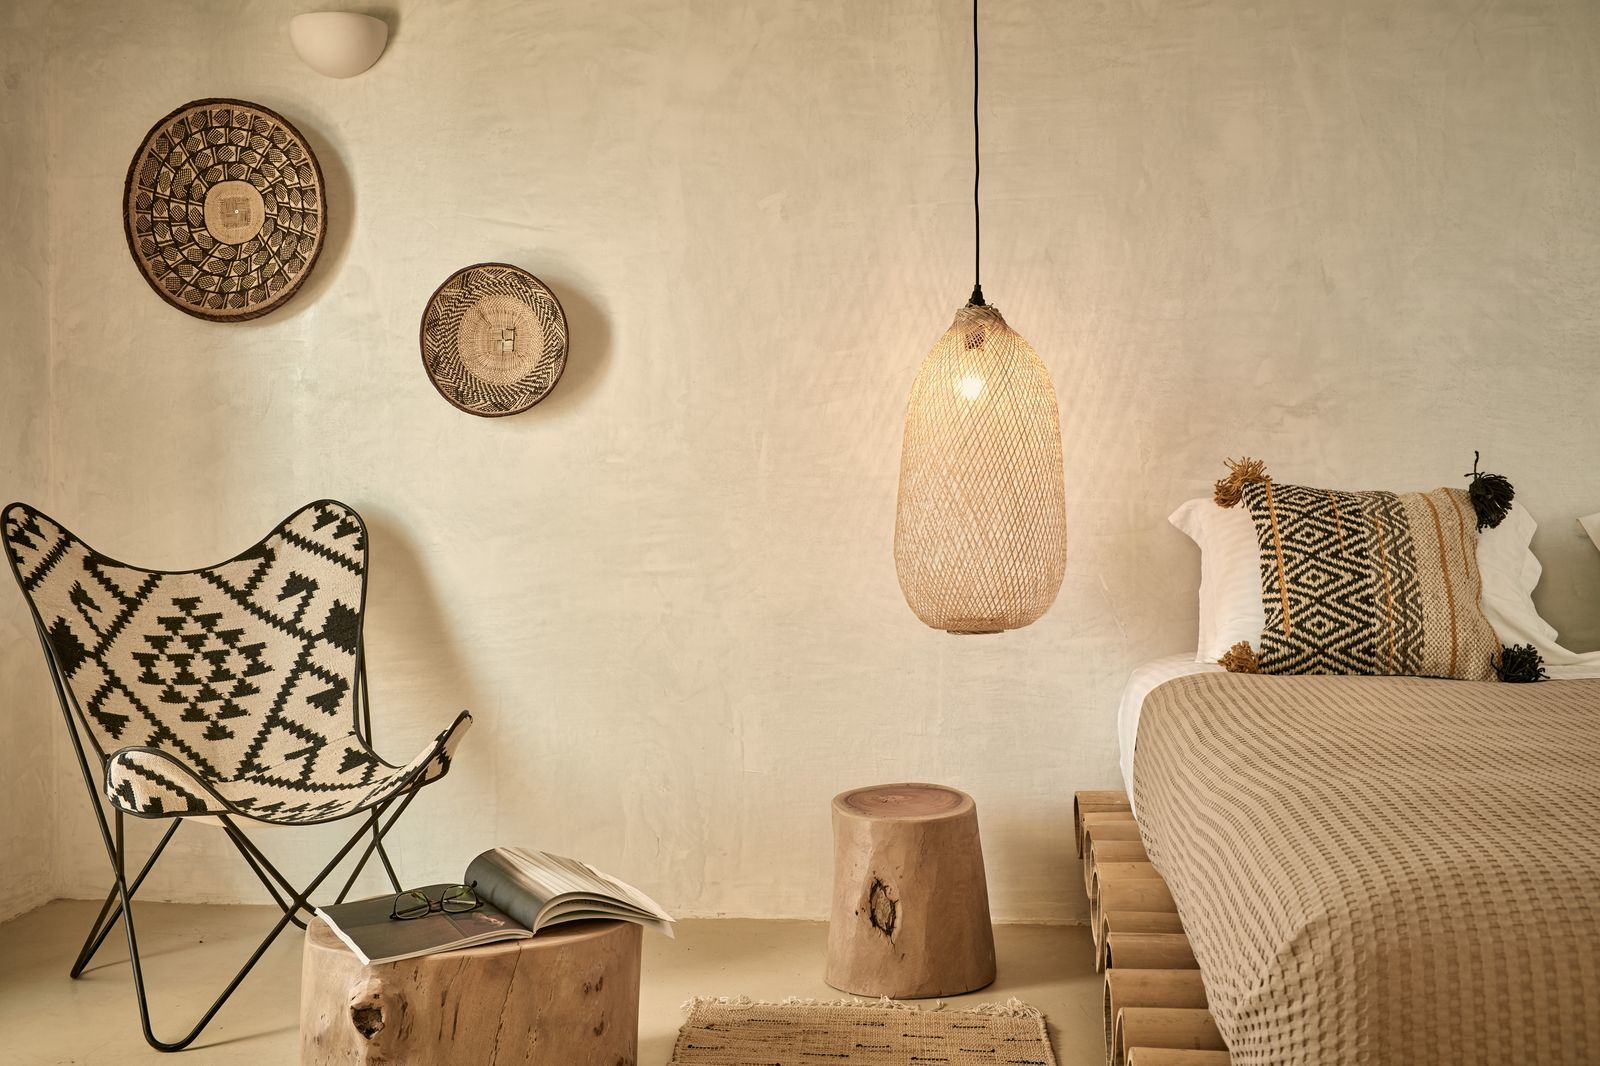 Ambiance-ethnic-chic_Naxian-collection-hotel-Grece_Planete-deco